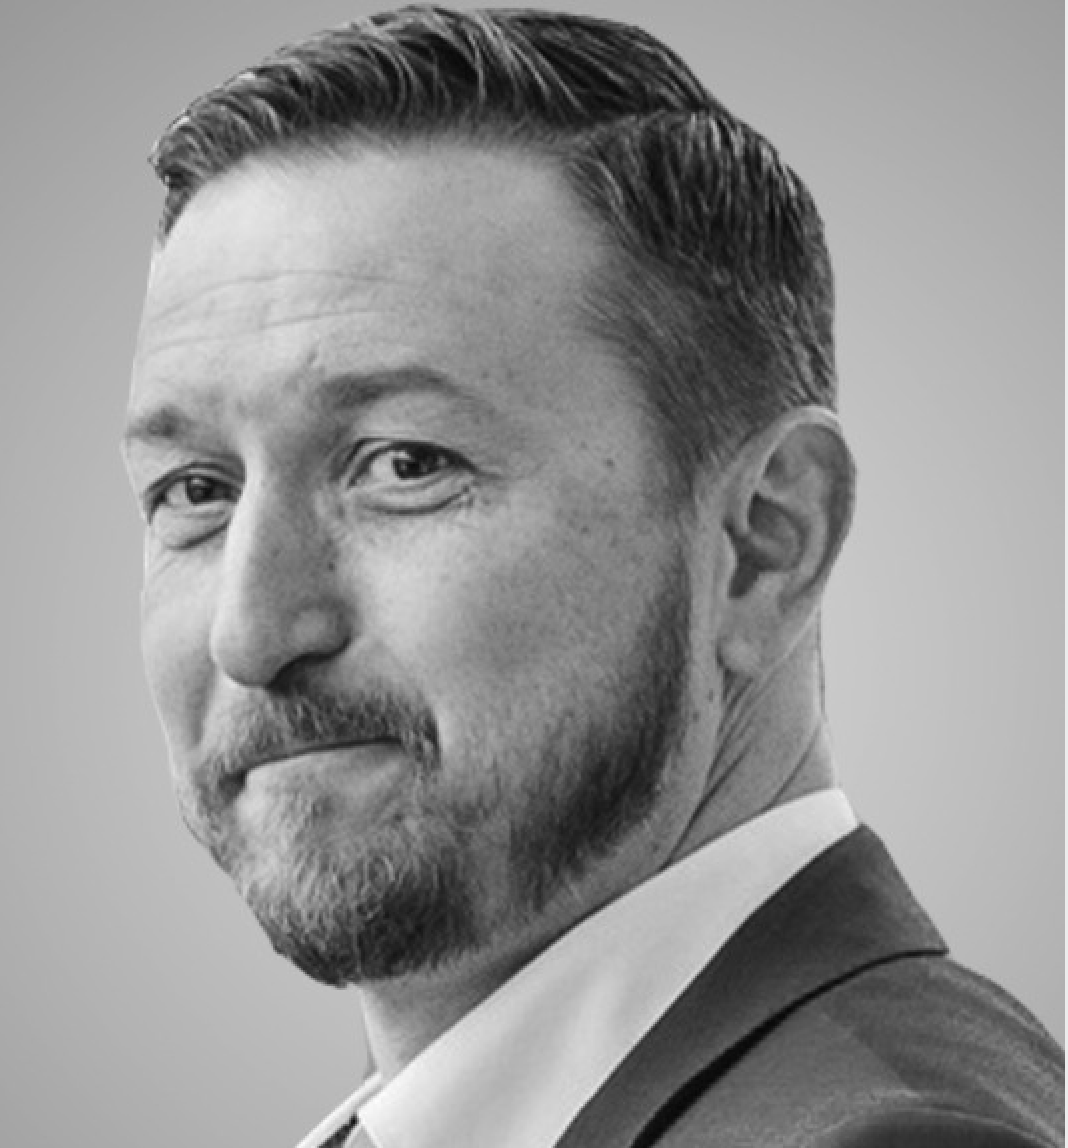 Markku Pitkänen  Sales strategists / Board Member Master of Business Administration  Markku Pitkänen is working as Sales Strategist and board member of Recon AI. Markku provides his know-how and experience in developing global sales strategy and building sales team to Recon AI's operations.